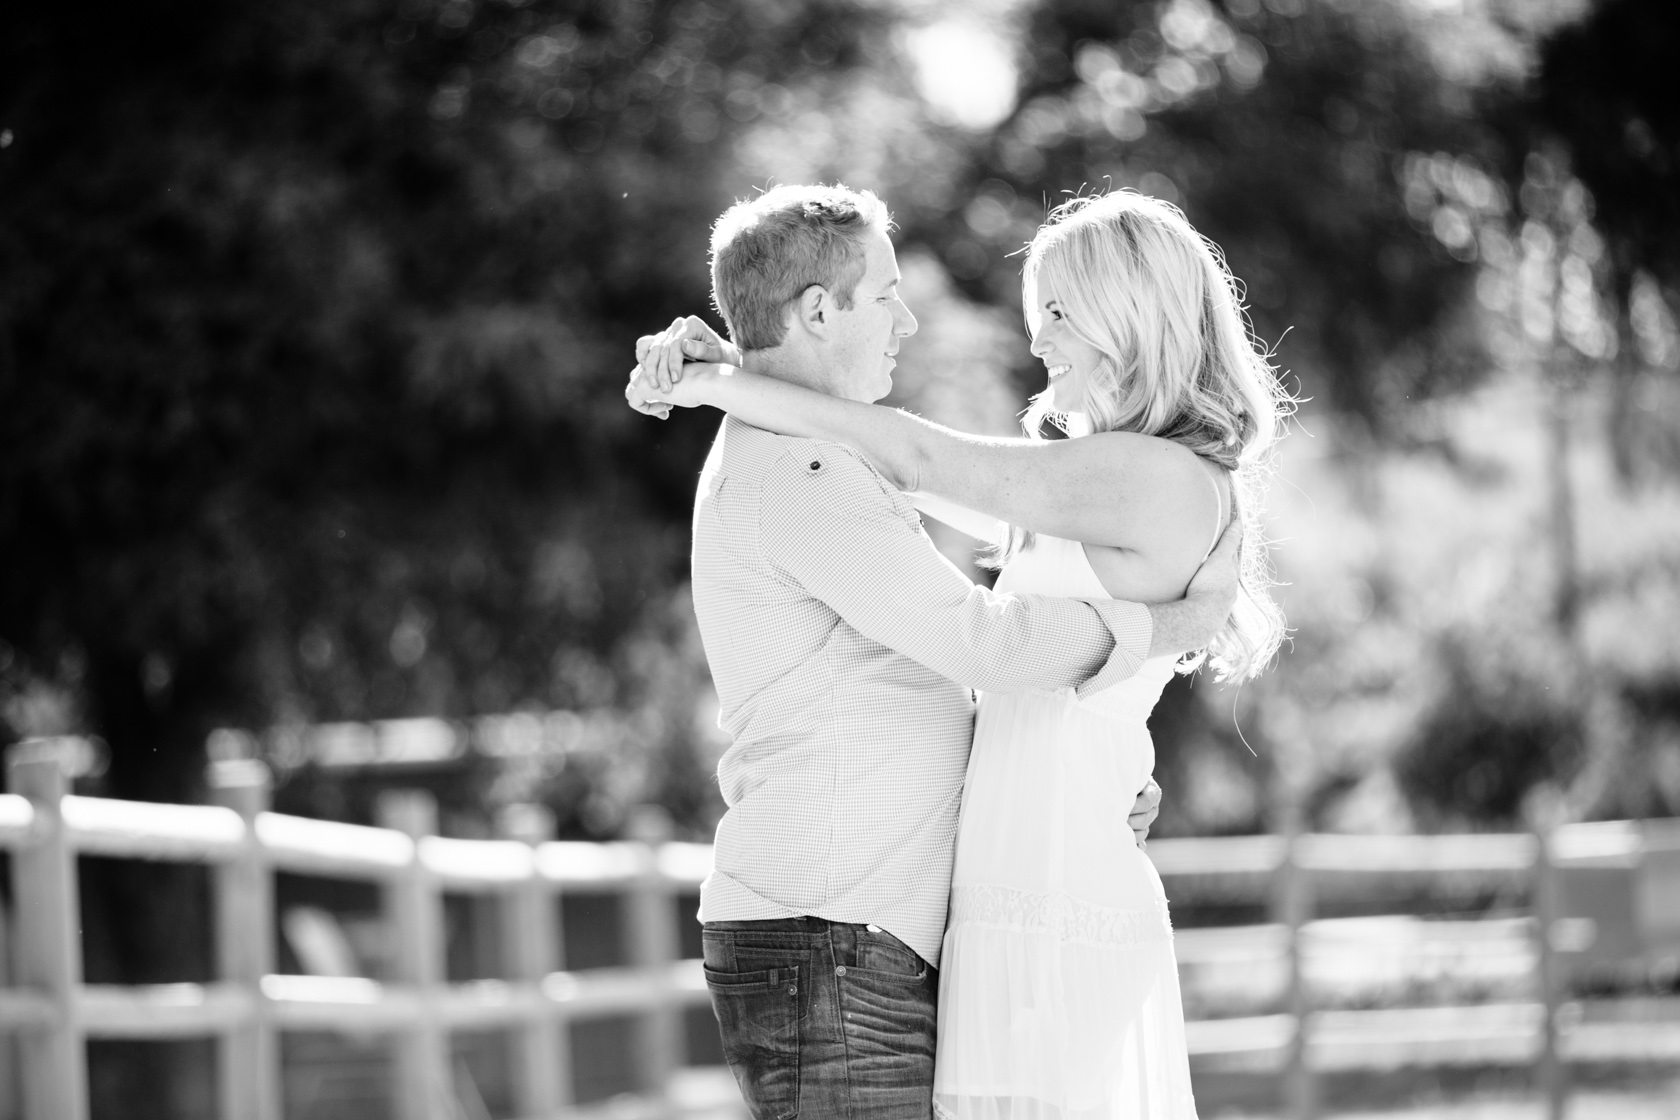 Julian_Farm_Engagement_22.jpg